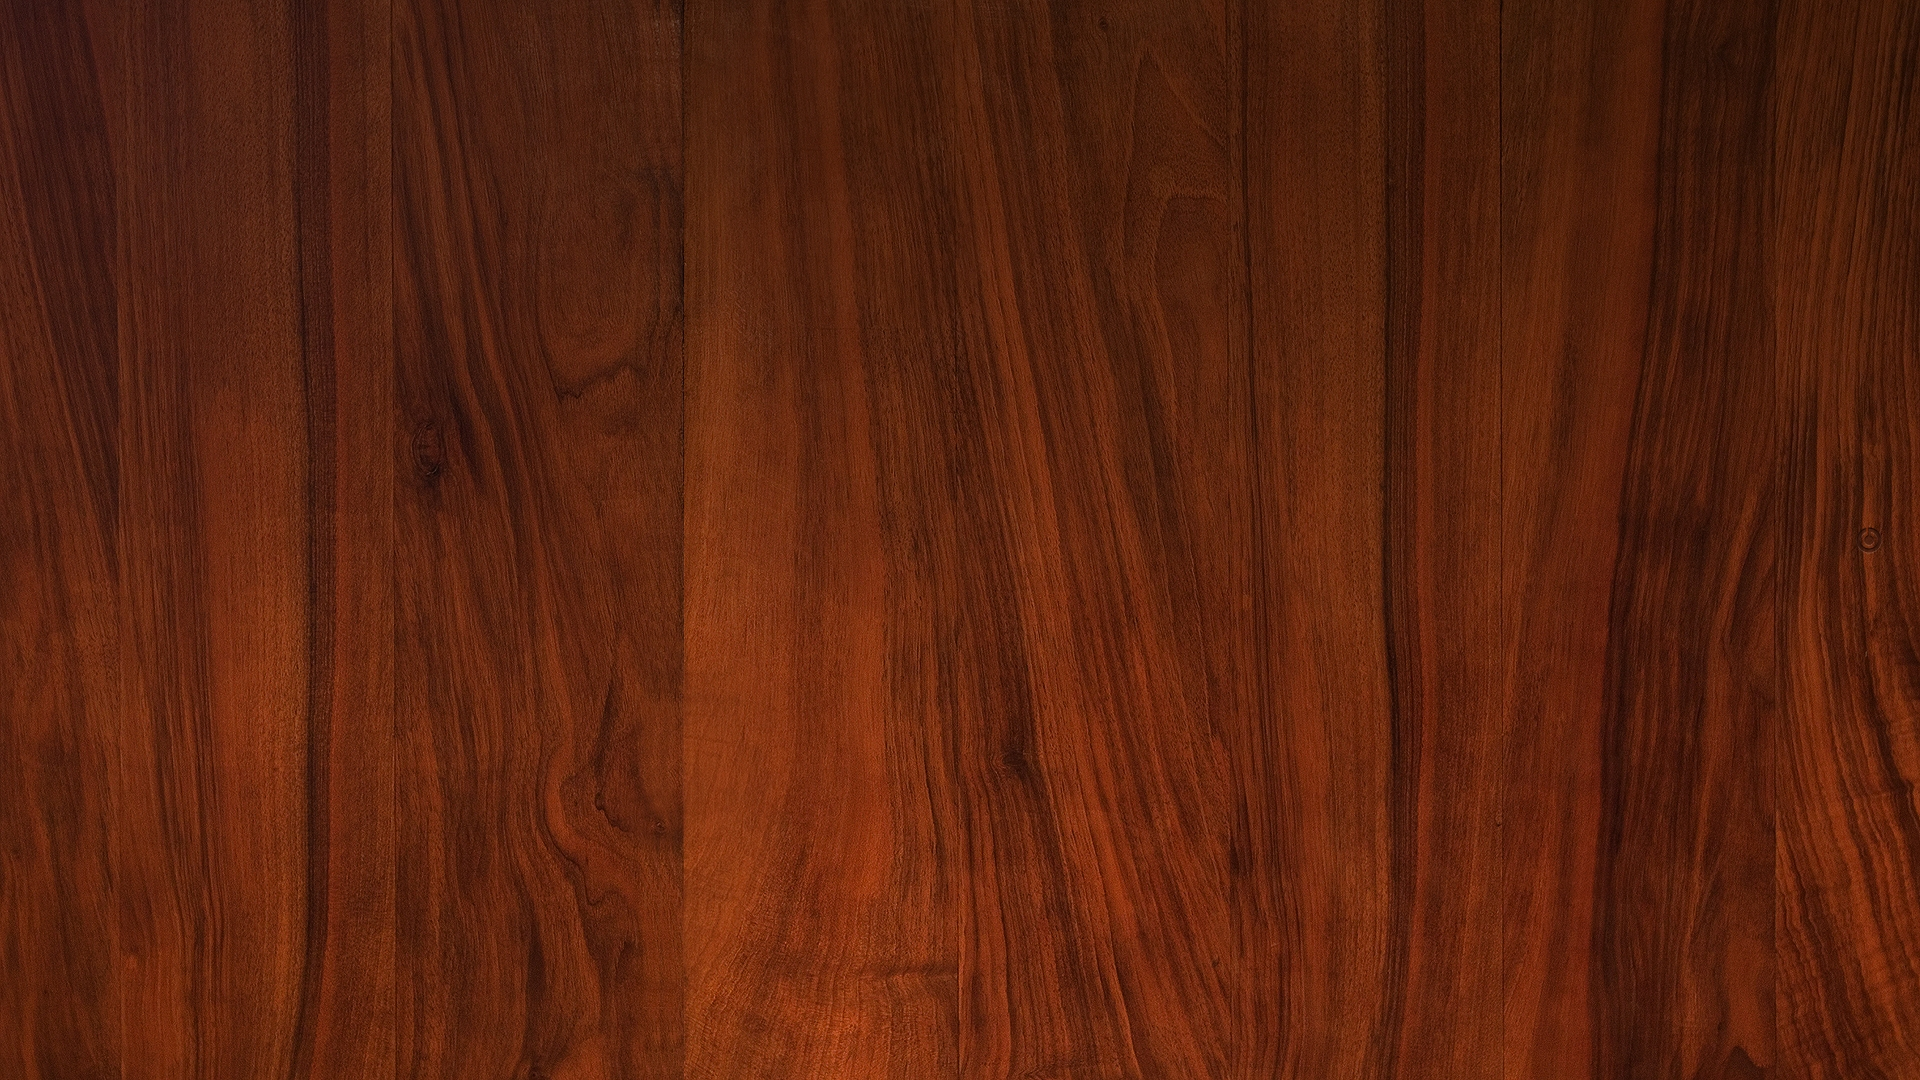 Wood Wall Paper 35 hd wood wallpapers/backgrounds for free download